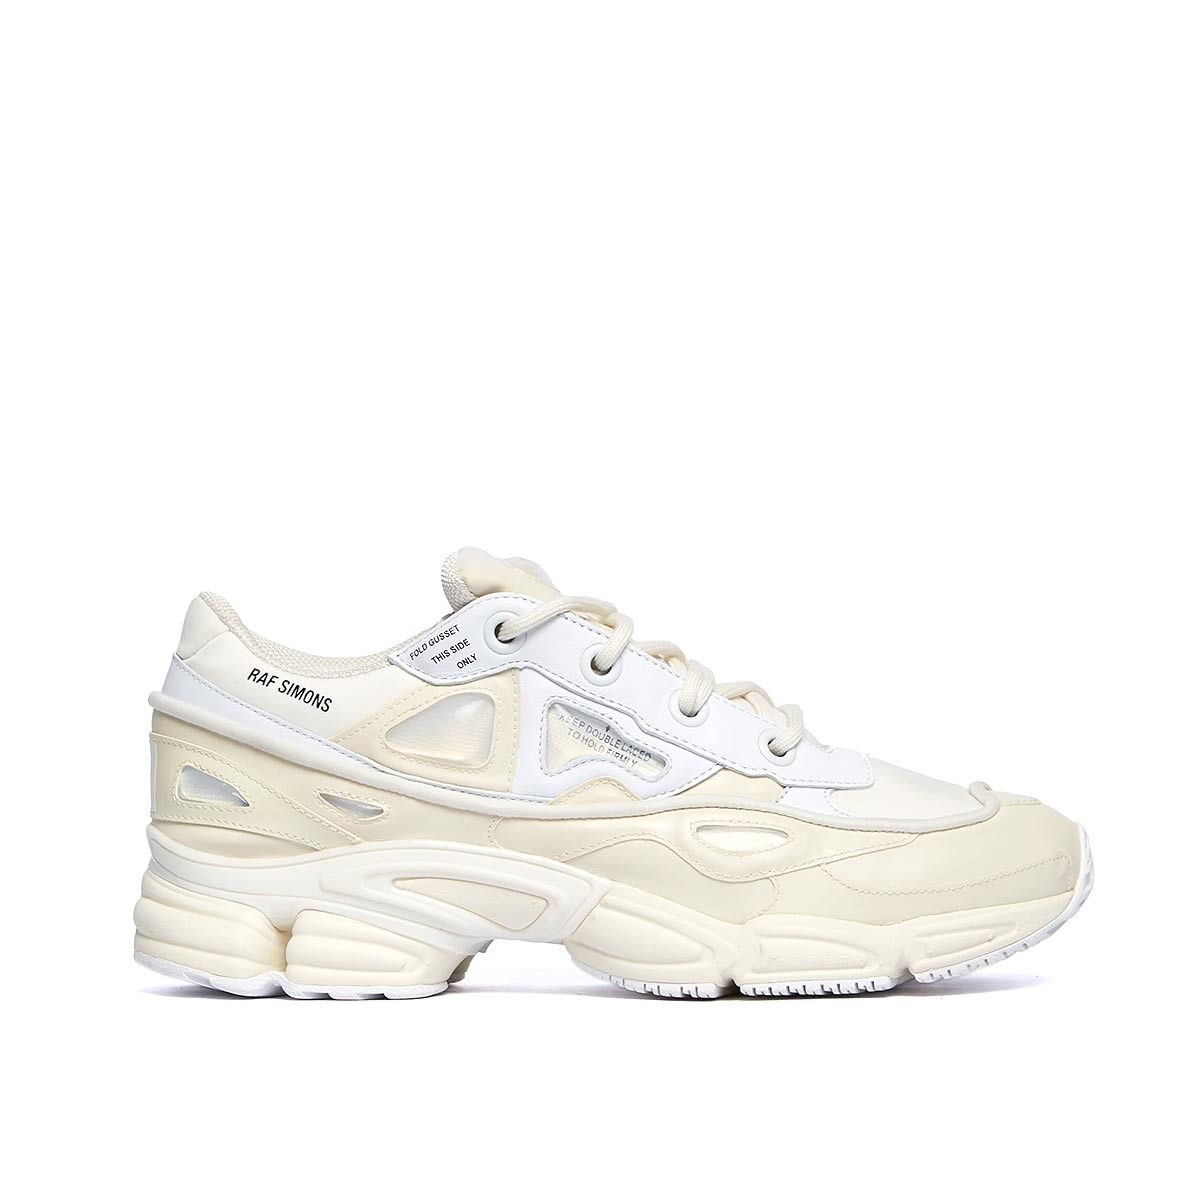 Delivery by March 31 Ozweego Bunny sneakers from the S/S2017 Raf Simons x Adidas collection in cream white These sneakers are from Raf Simons new collection in collaboration with Adidas. The sneaker, here in cream white, takes a futuristic approach in a two layer upper with a running inspired profile and details made of silicone. The Oswego Bunny sneakers rubber, mesh and leather upper, mesh lining, EVA midsole and rubber outsole. - Cream white sneakers - Rubber, mesh and leather upper -...